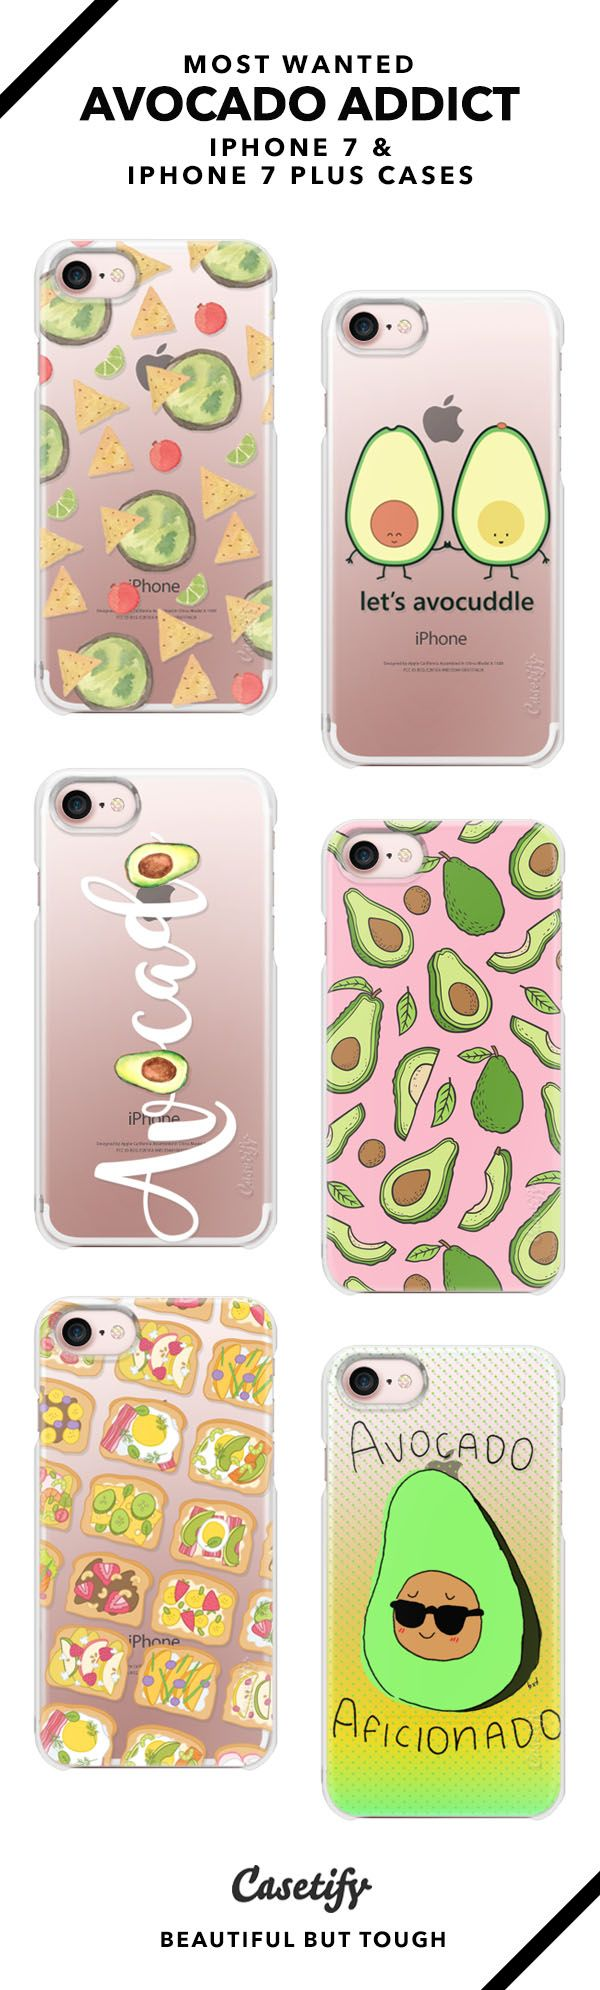 """""""We go together like Avocado and literally everything.""""   Top iPhone 7 Cases and iPhone 7 Plus Cases for Avocado Lovers. For more Avocado Cases, shop them here ☝☝☝ BEAUTIFUL BUT TOUGH ✨ - Salad, Rezept, Smoothing, Dressing, Toast, Saladm Benefits, Pasta, Egg, Brownies"""